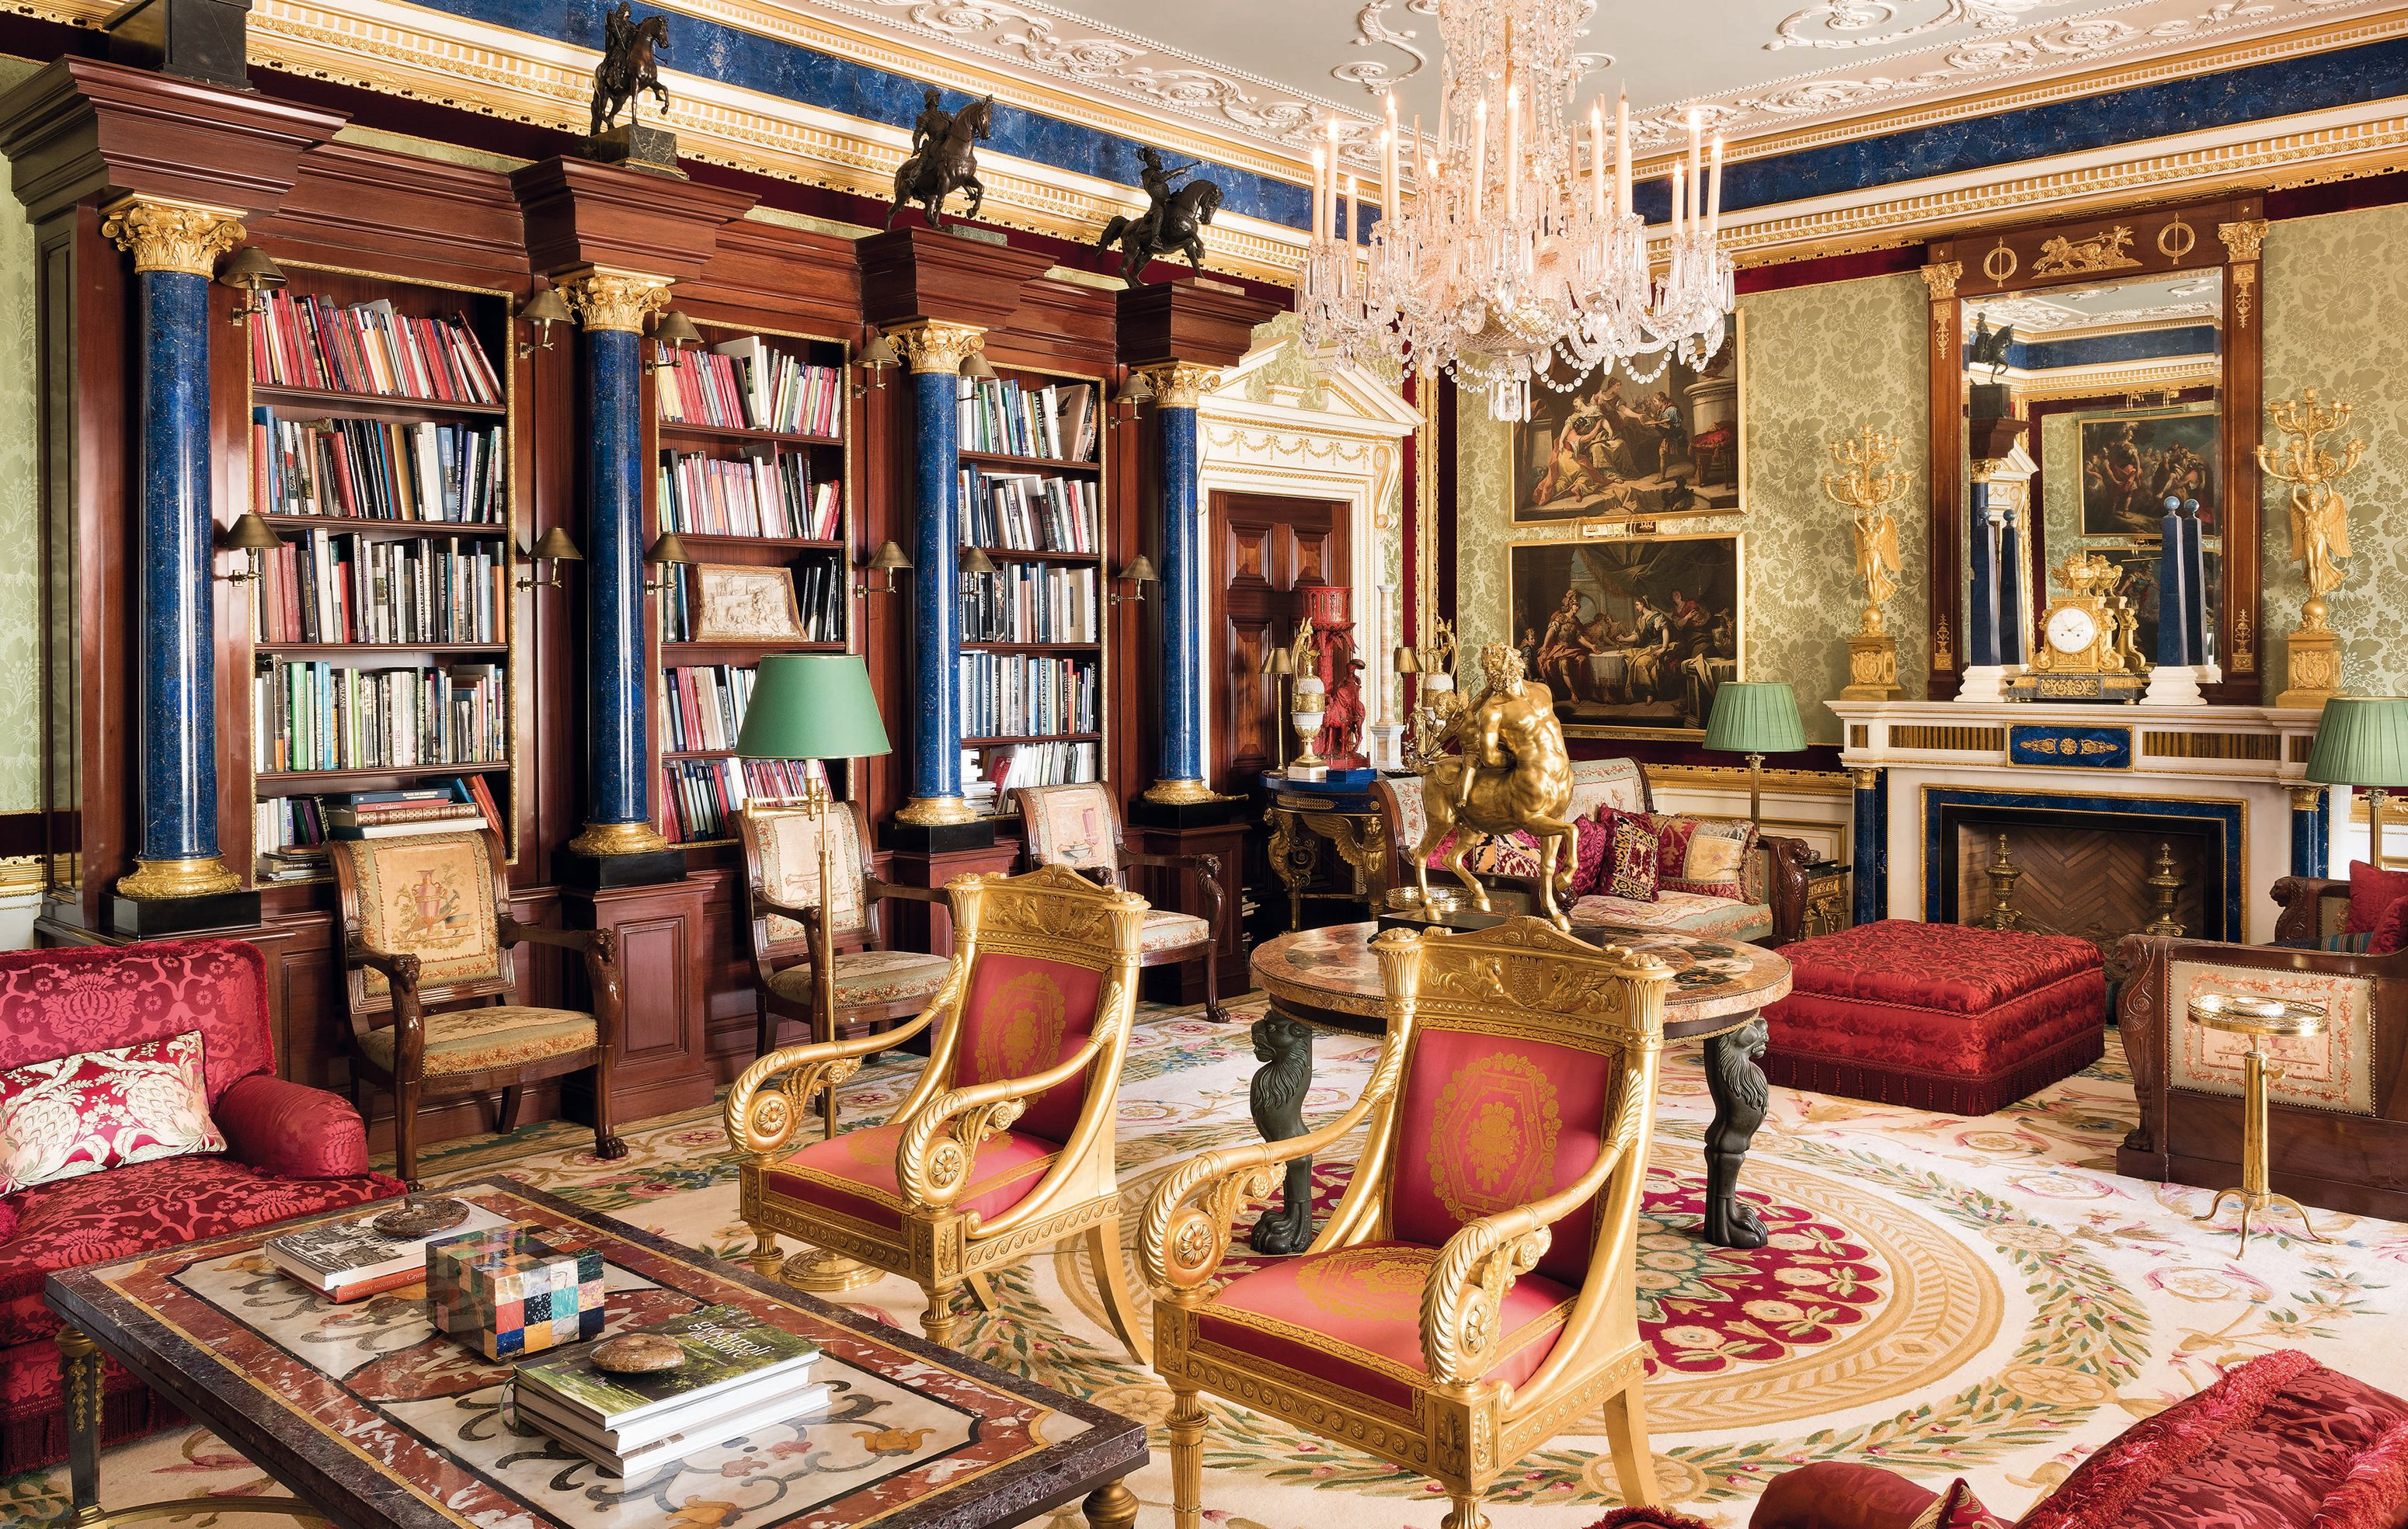 inside the beautiful world of robert zellinger de balkany : the